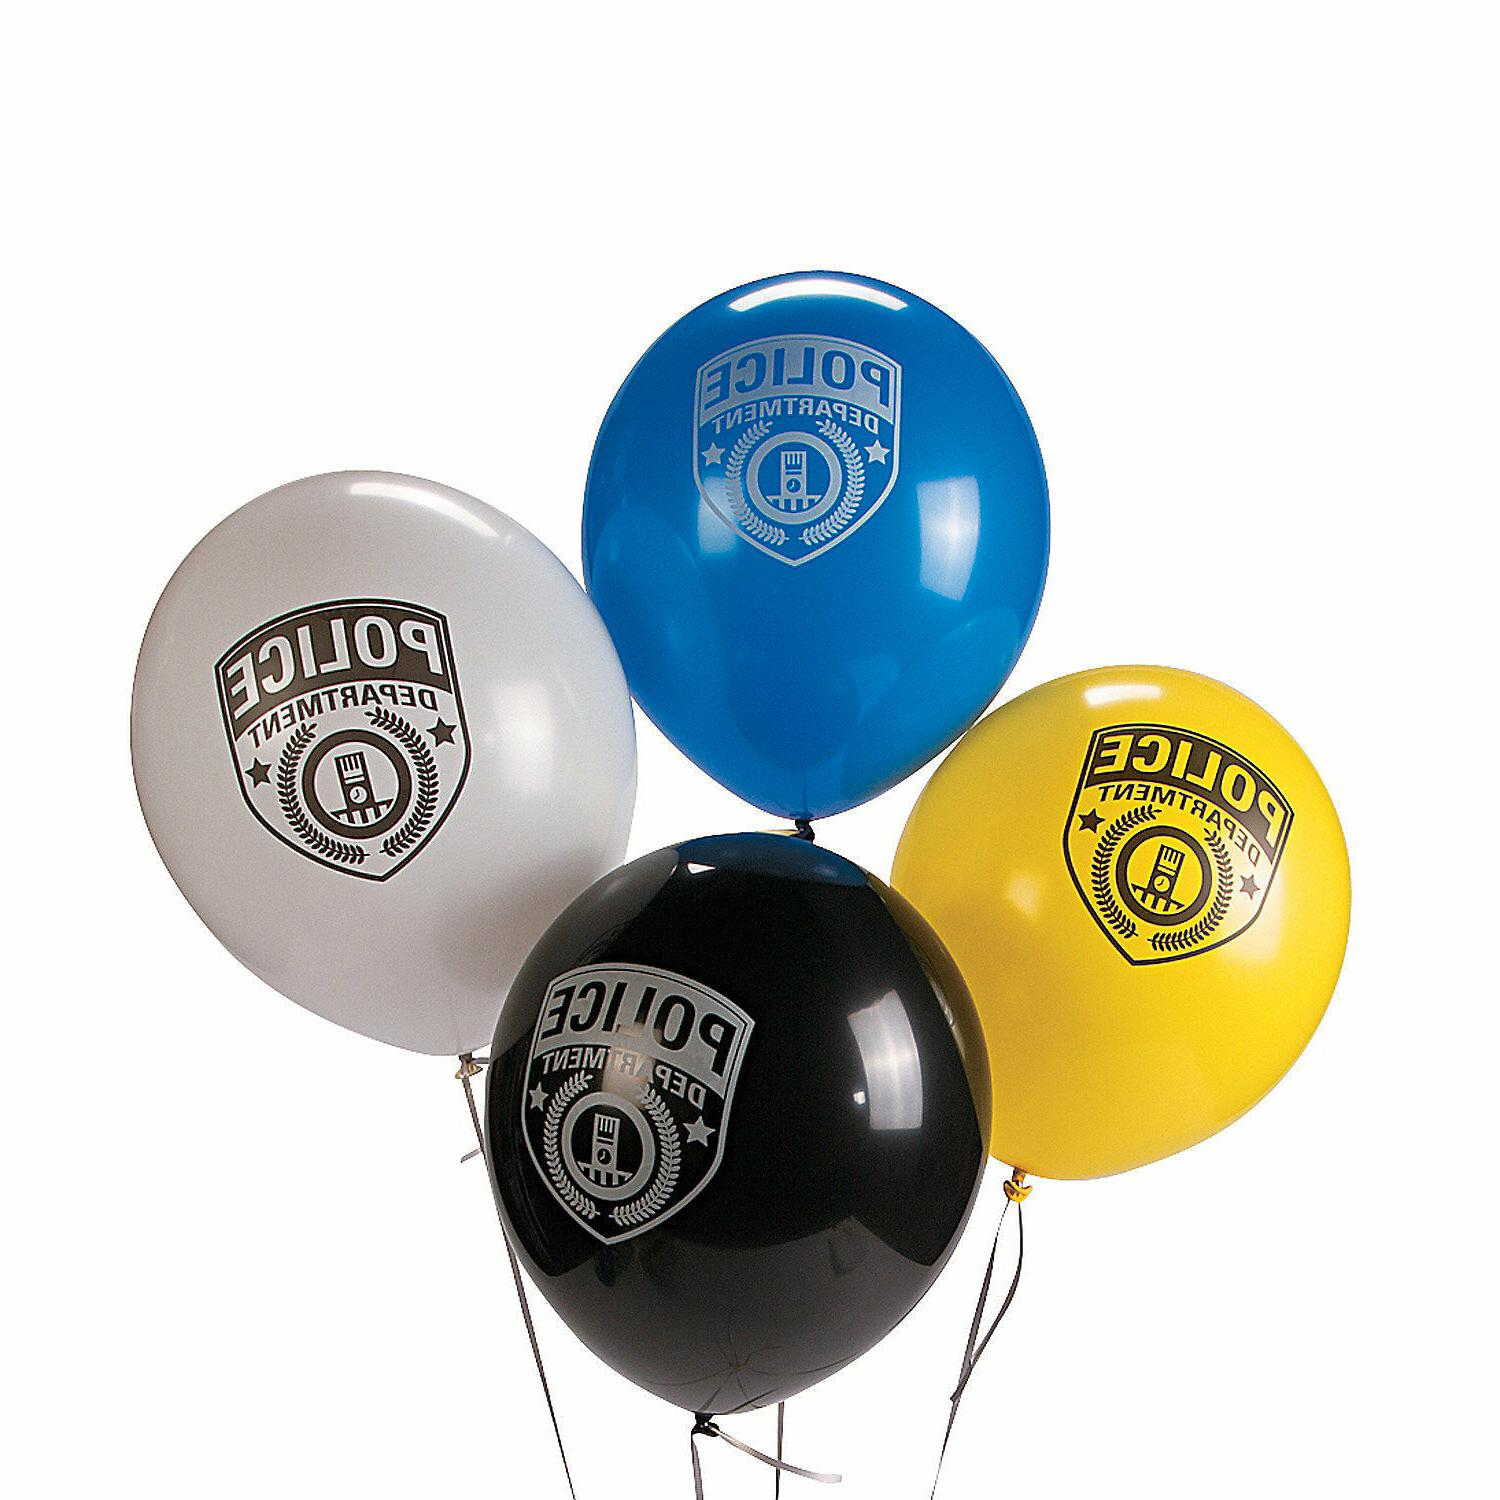 24 POLICE Policeman Cop Party Decorations Police Department